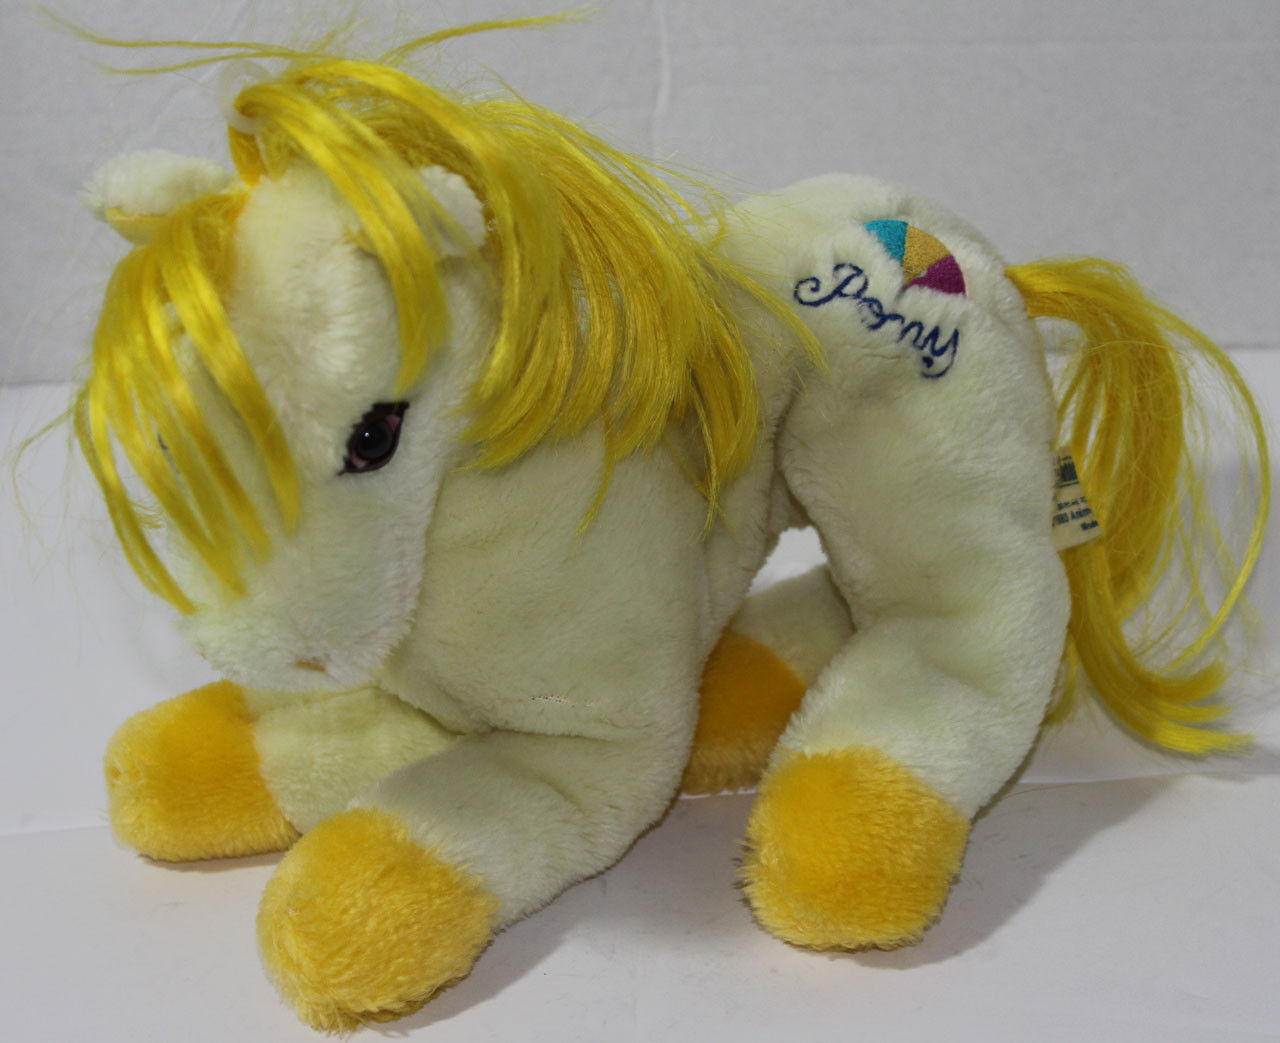 Primary image for Vintage 1983 Animal Toy YELLOW PONY STUFFED PLUSH ANIMAL Soft Horse CUTE